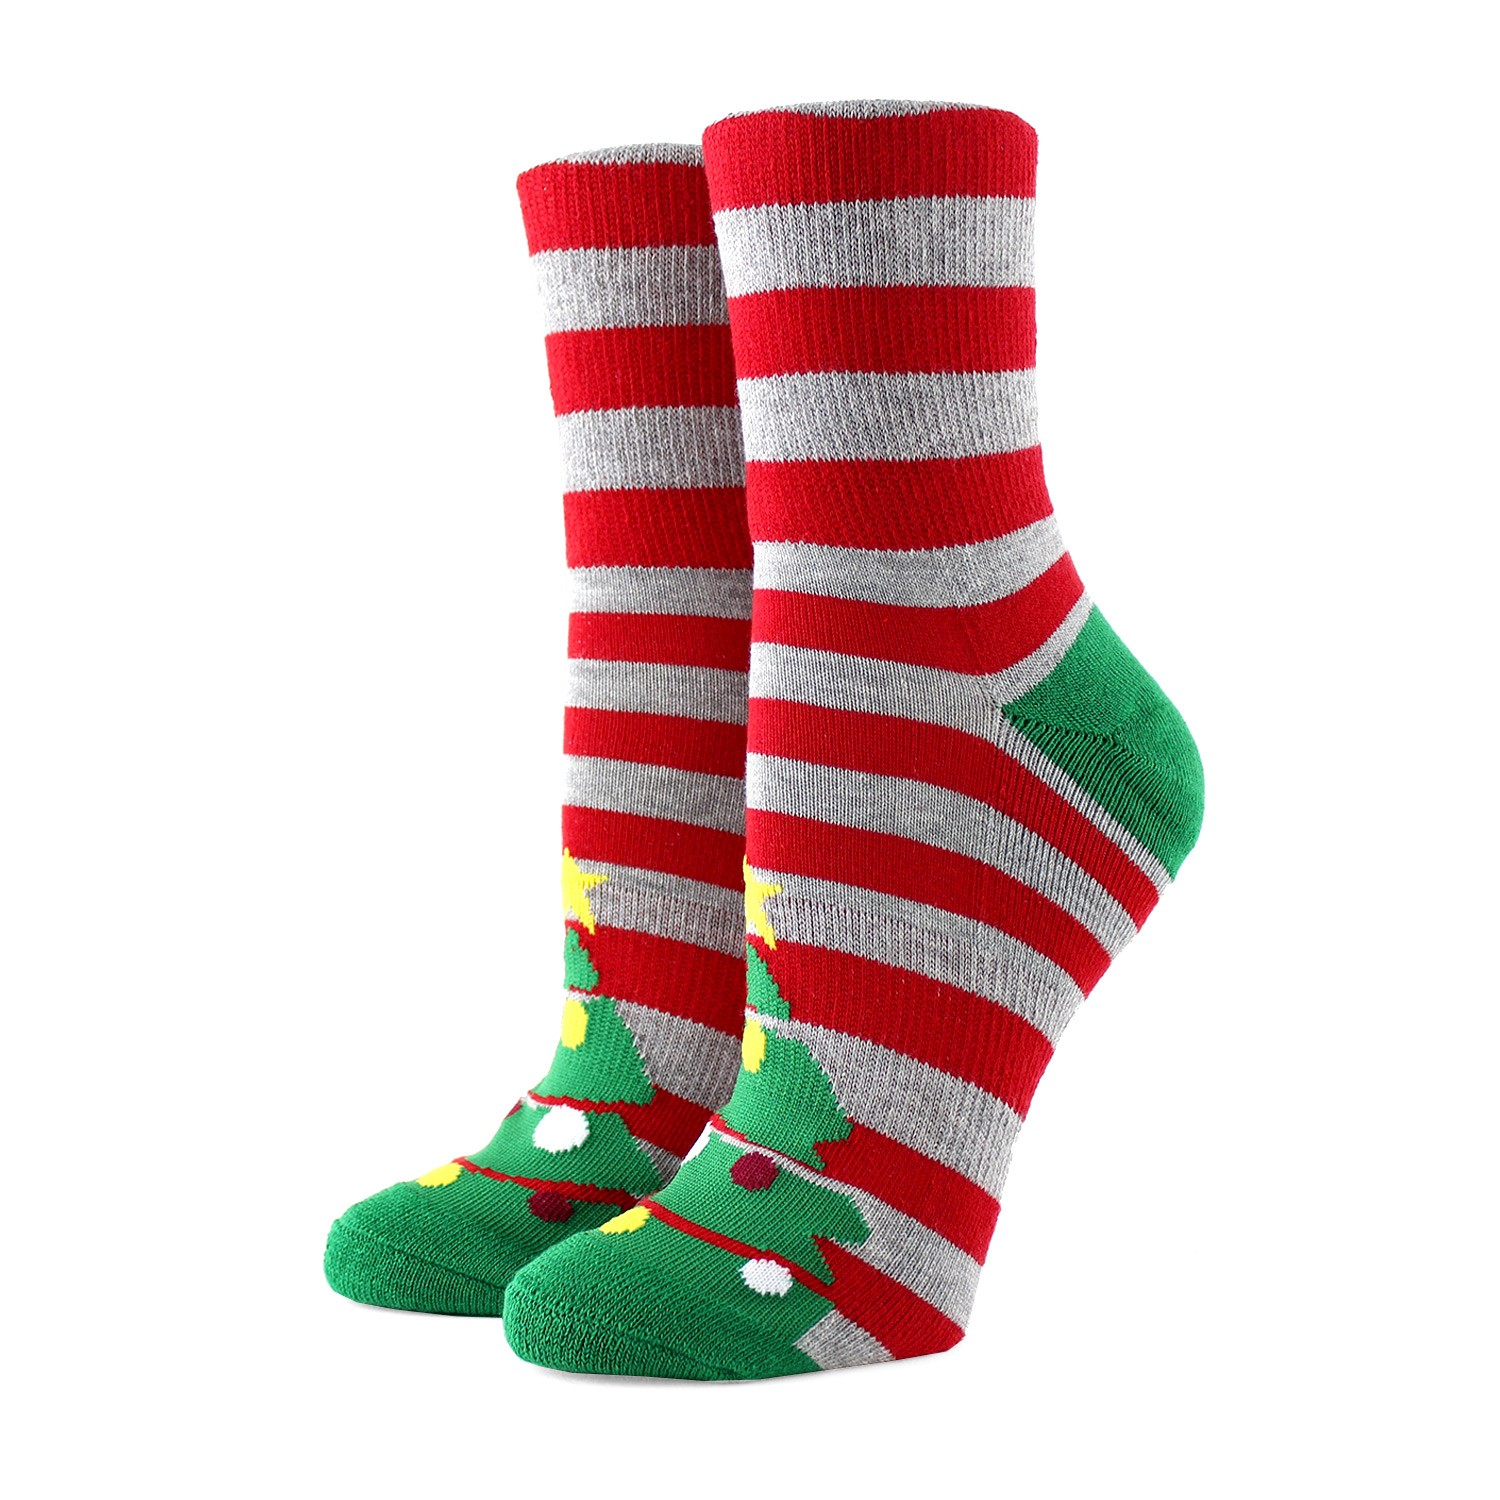 Arthur George by Robert Kardashian Christmas Tree Socks